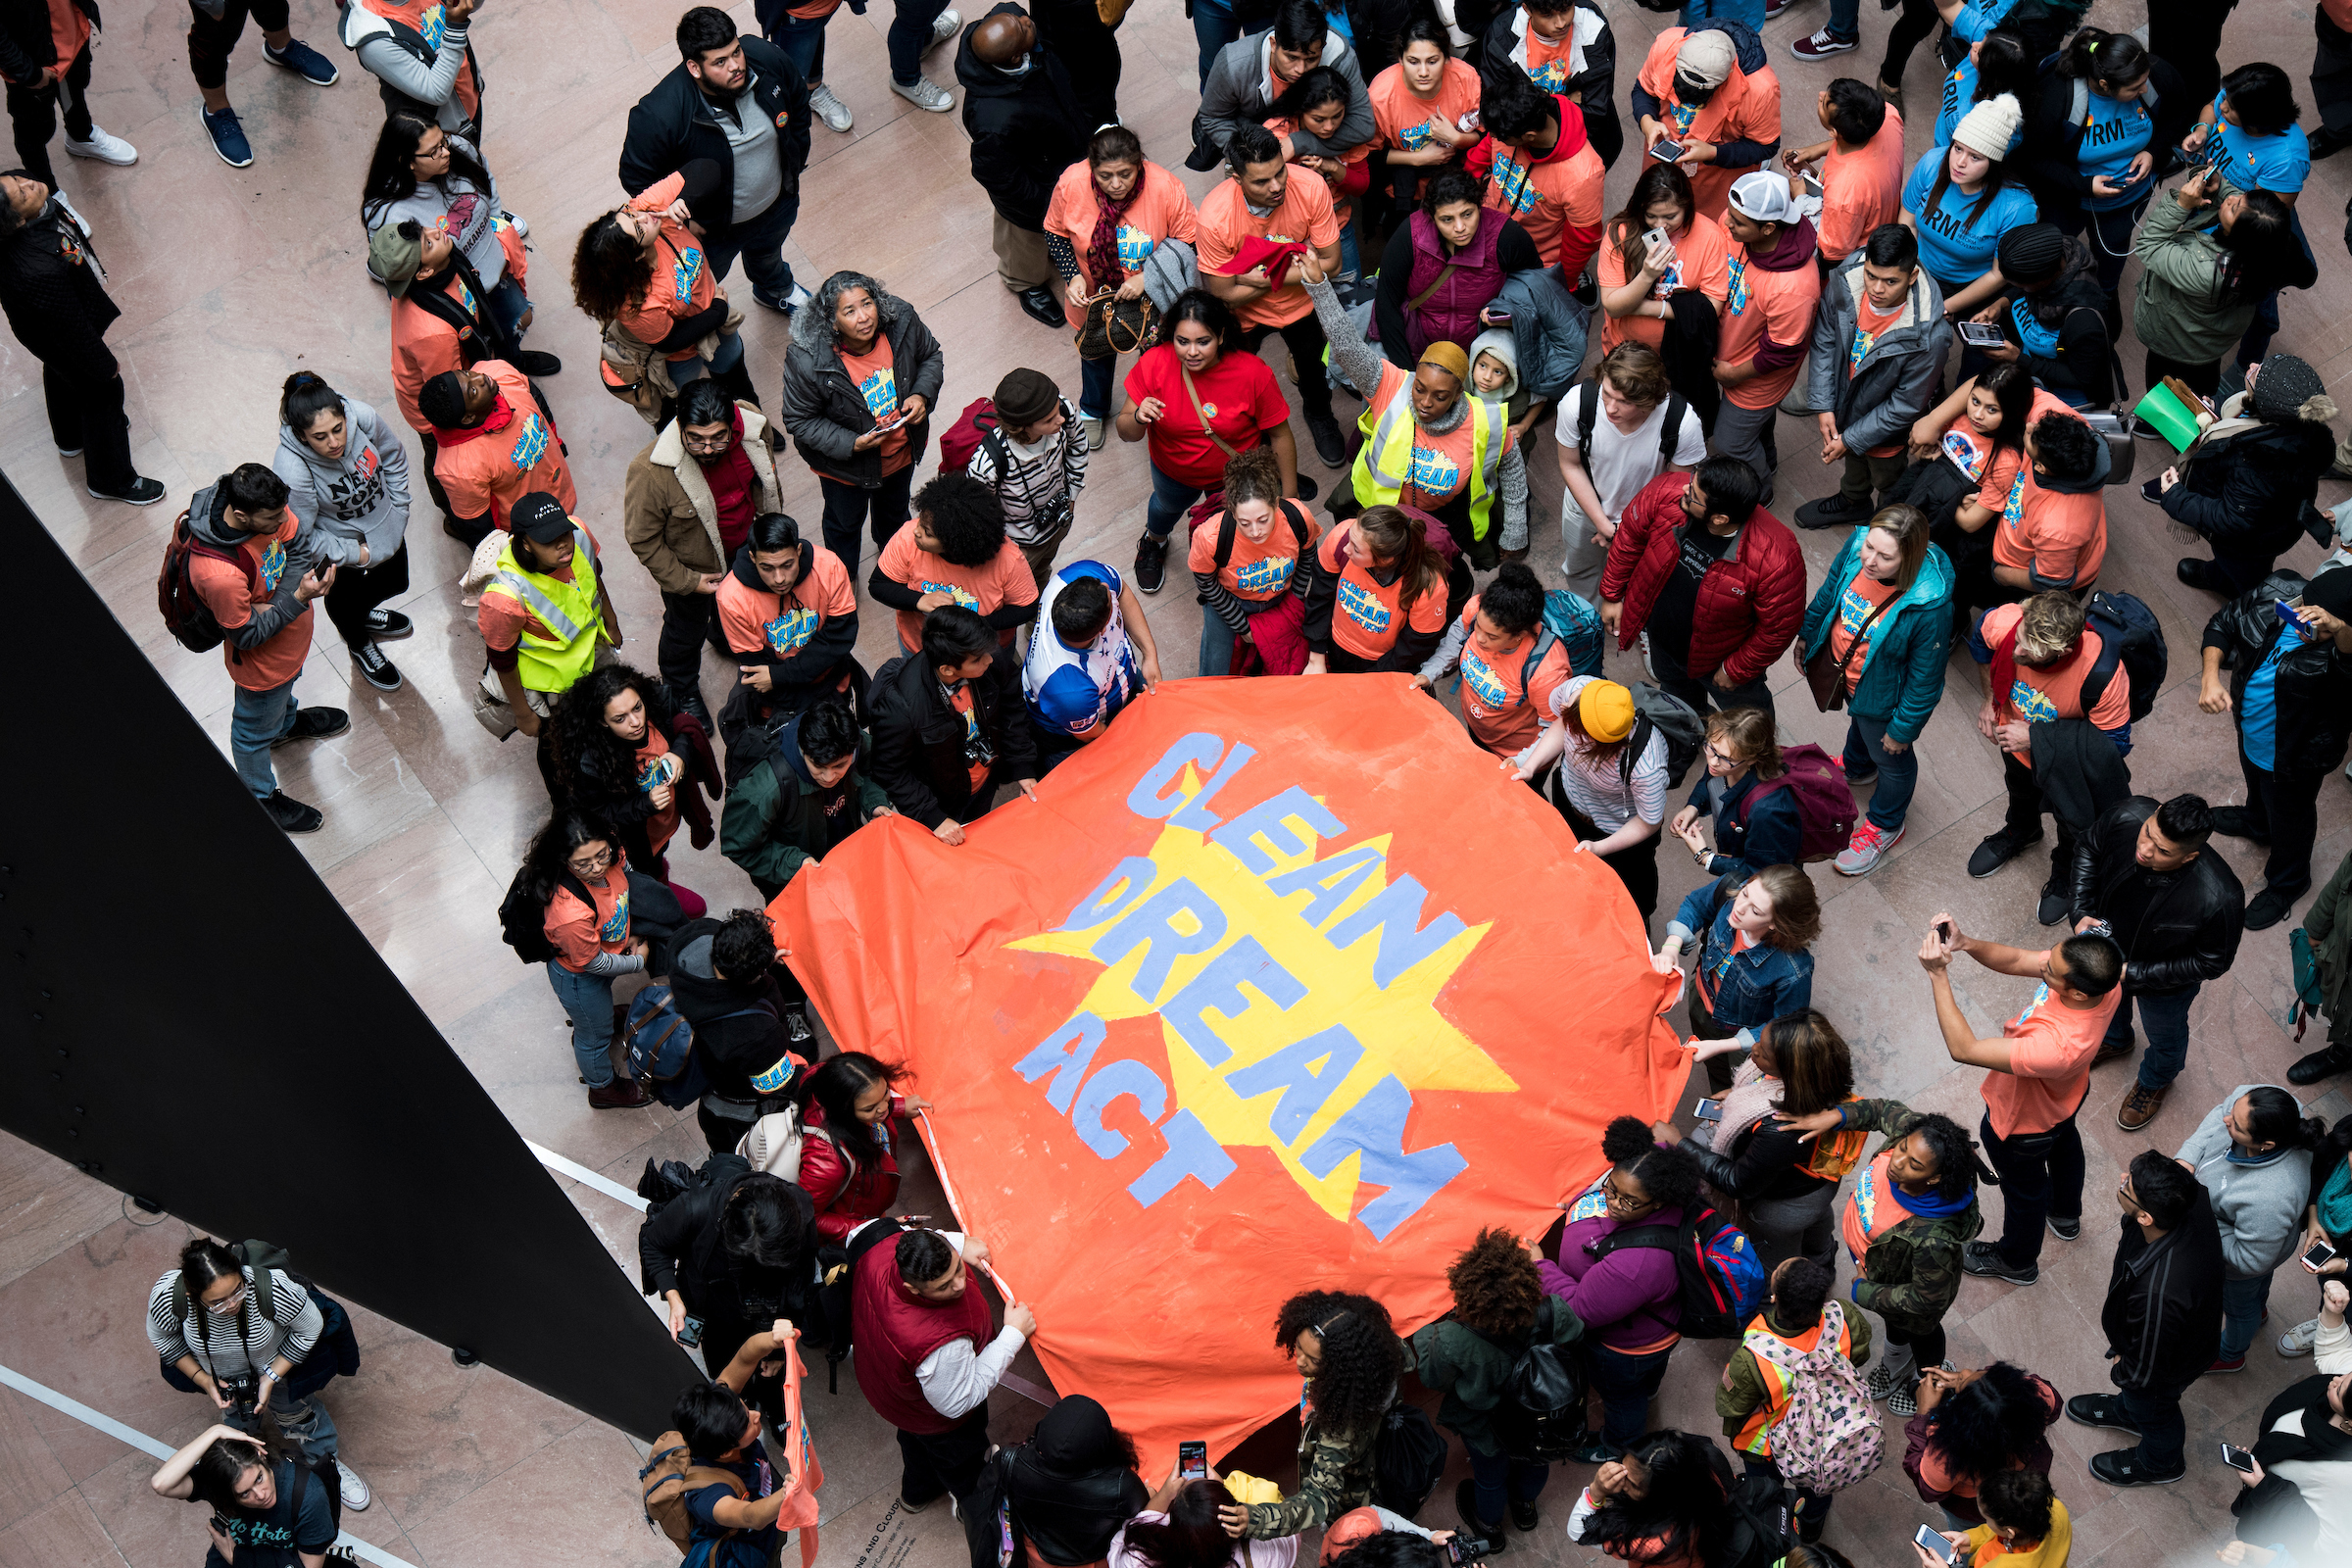 Protesters hold a banner demanding a clean Dream Act in the Hart Senate Office Building. (Bill Clark/CQ Roll Call)